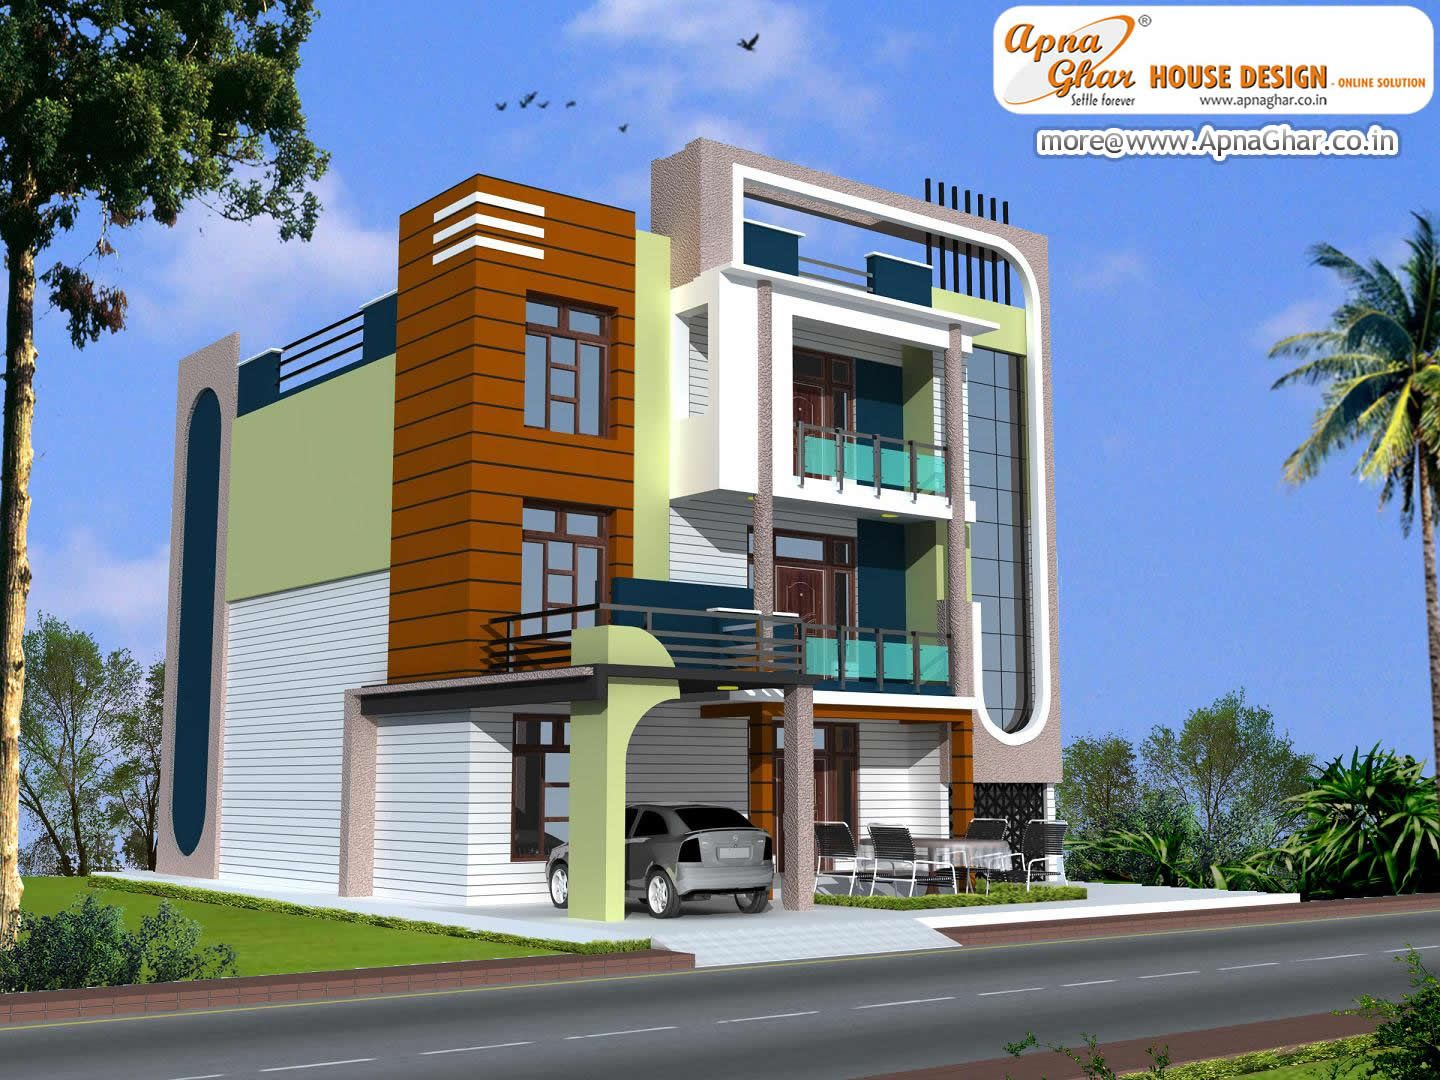 Modern Triplex House Design Area 223 Sq Mt Click On This Link Http Www Apnaghar Co In Pre De House Elevation Independent House Shop House Plans